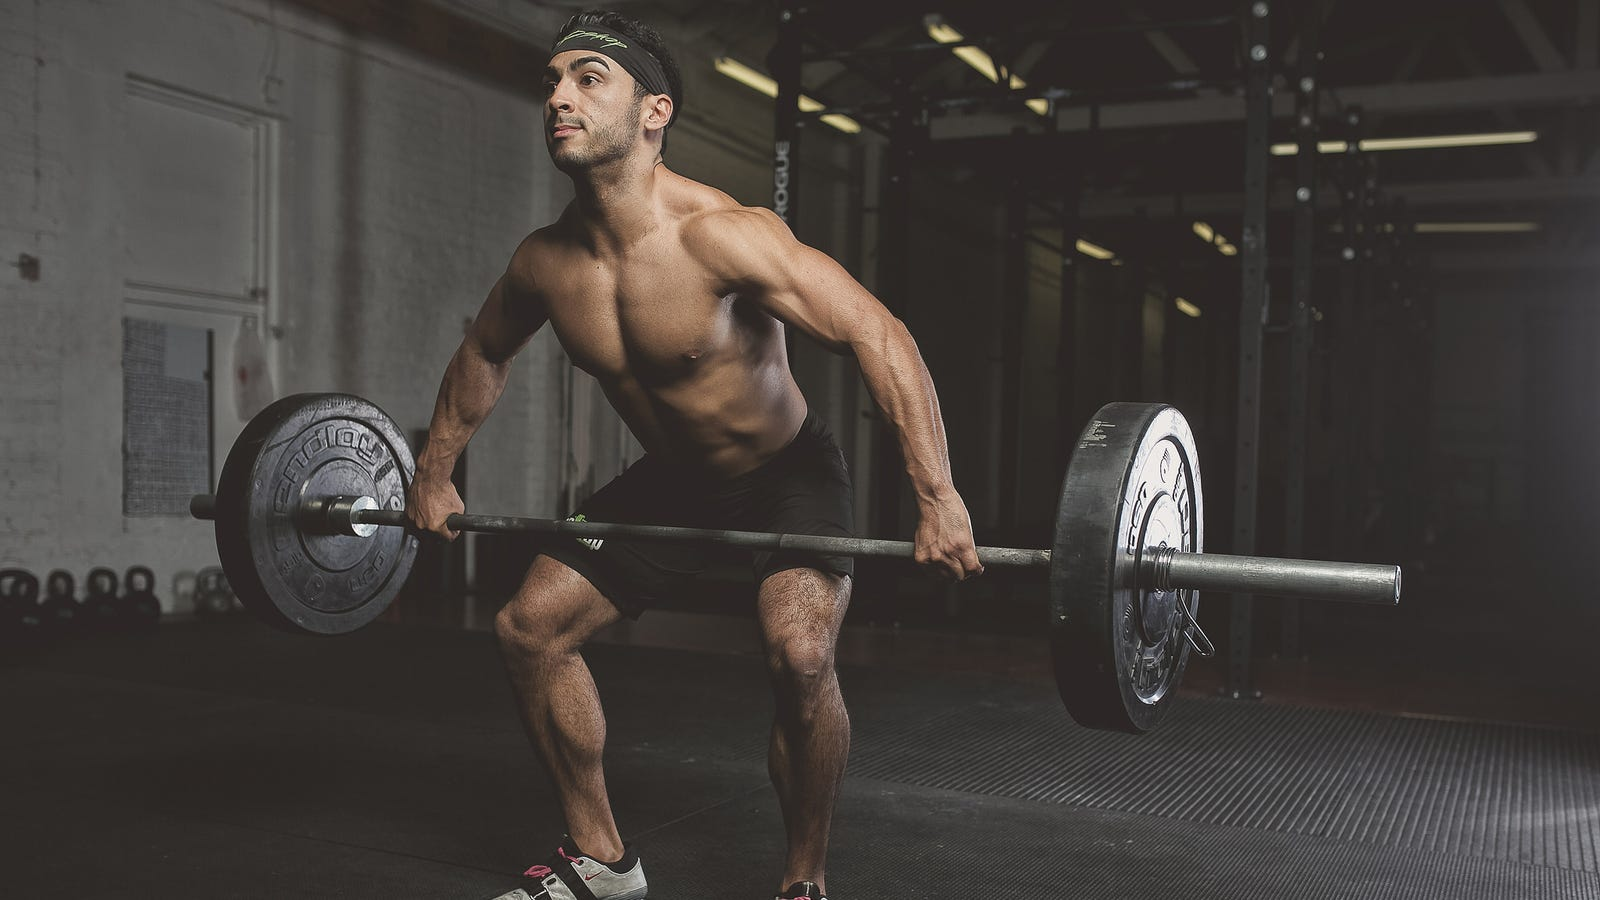 More Reps Or More Weight For Building Muscle